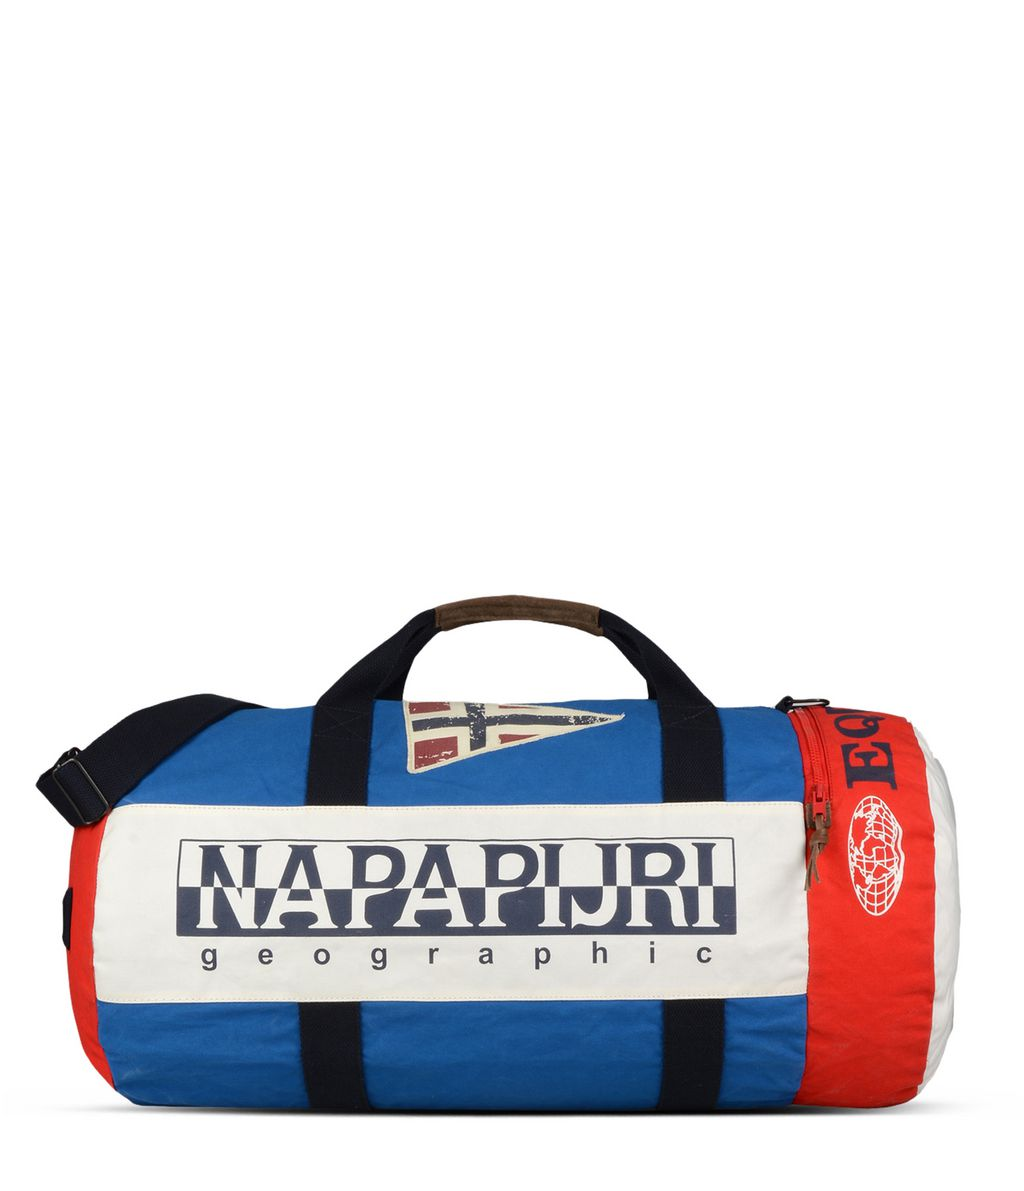 NAPAPIJRI EQUATOR   TRAVEL BAG,ROYAL